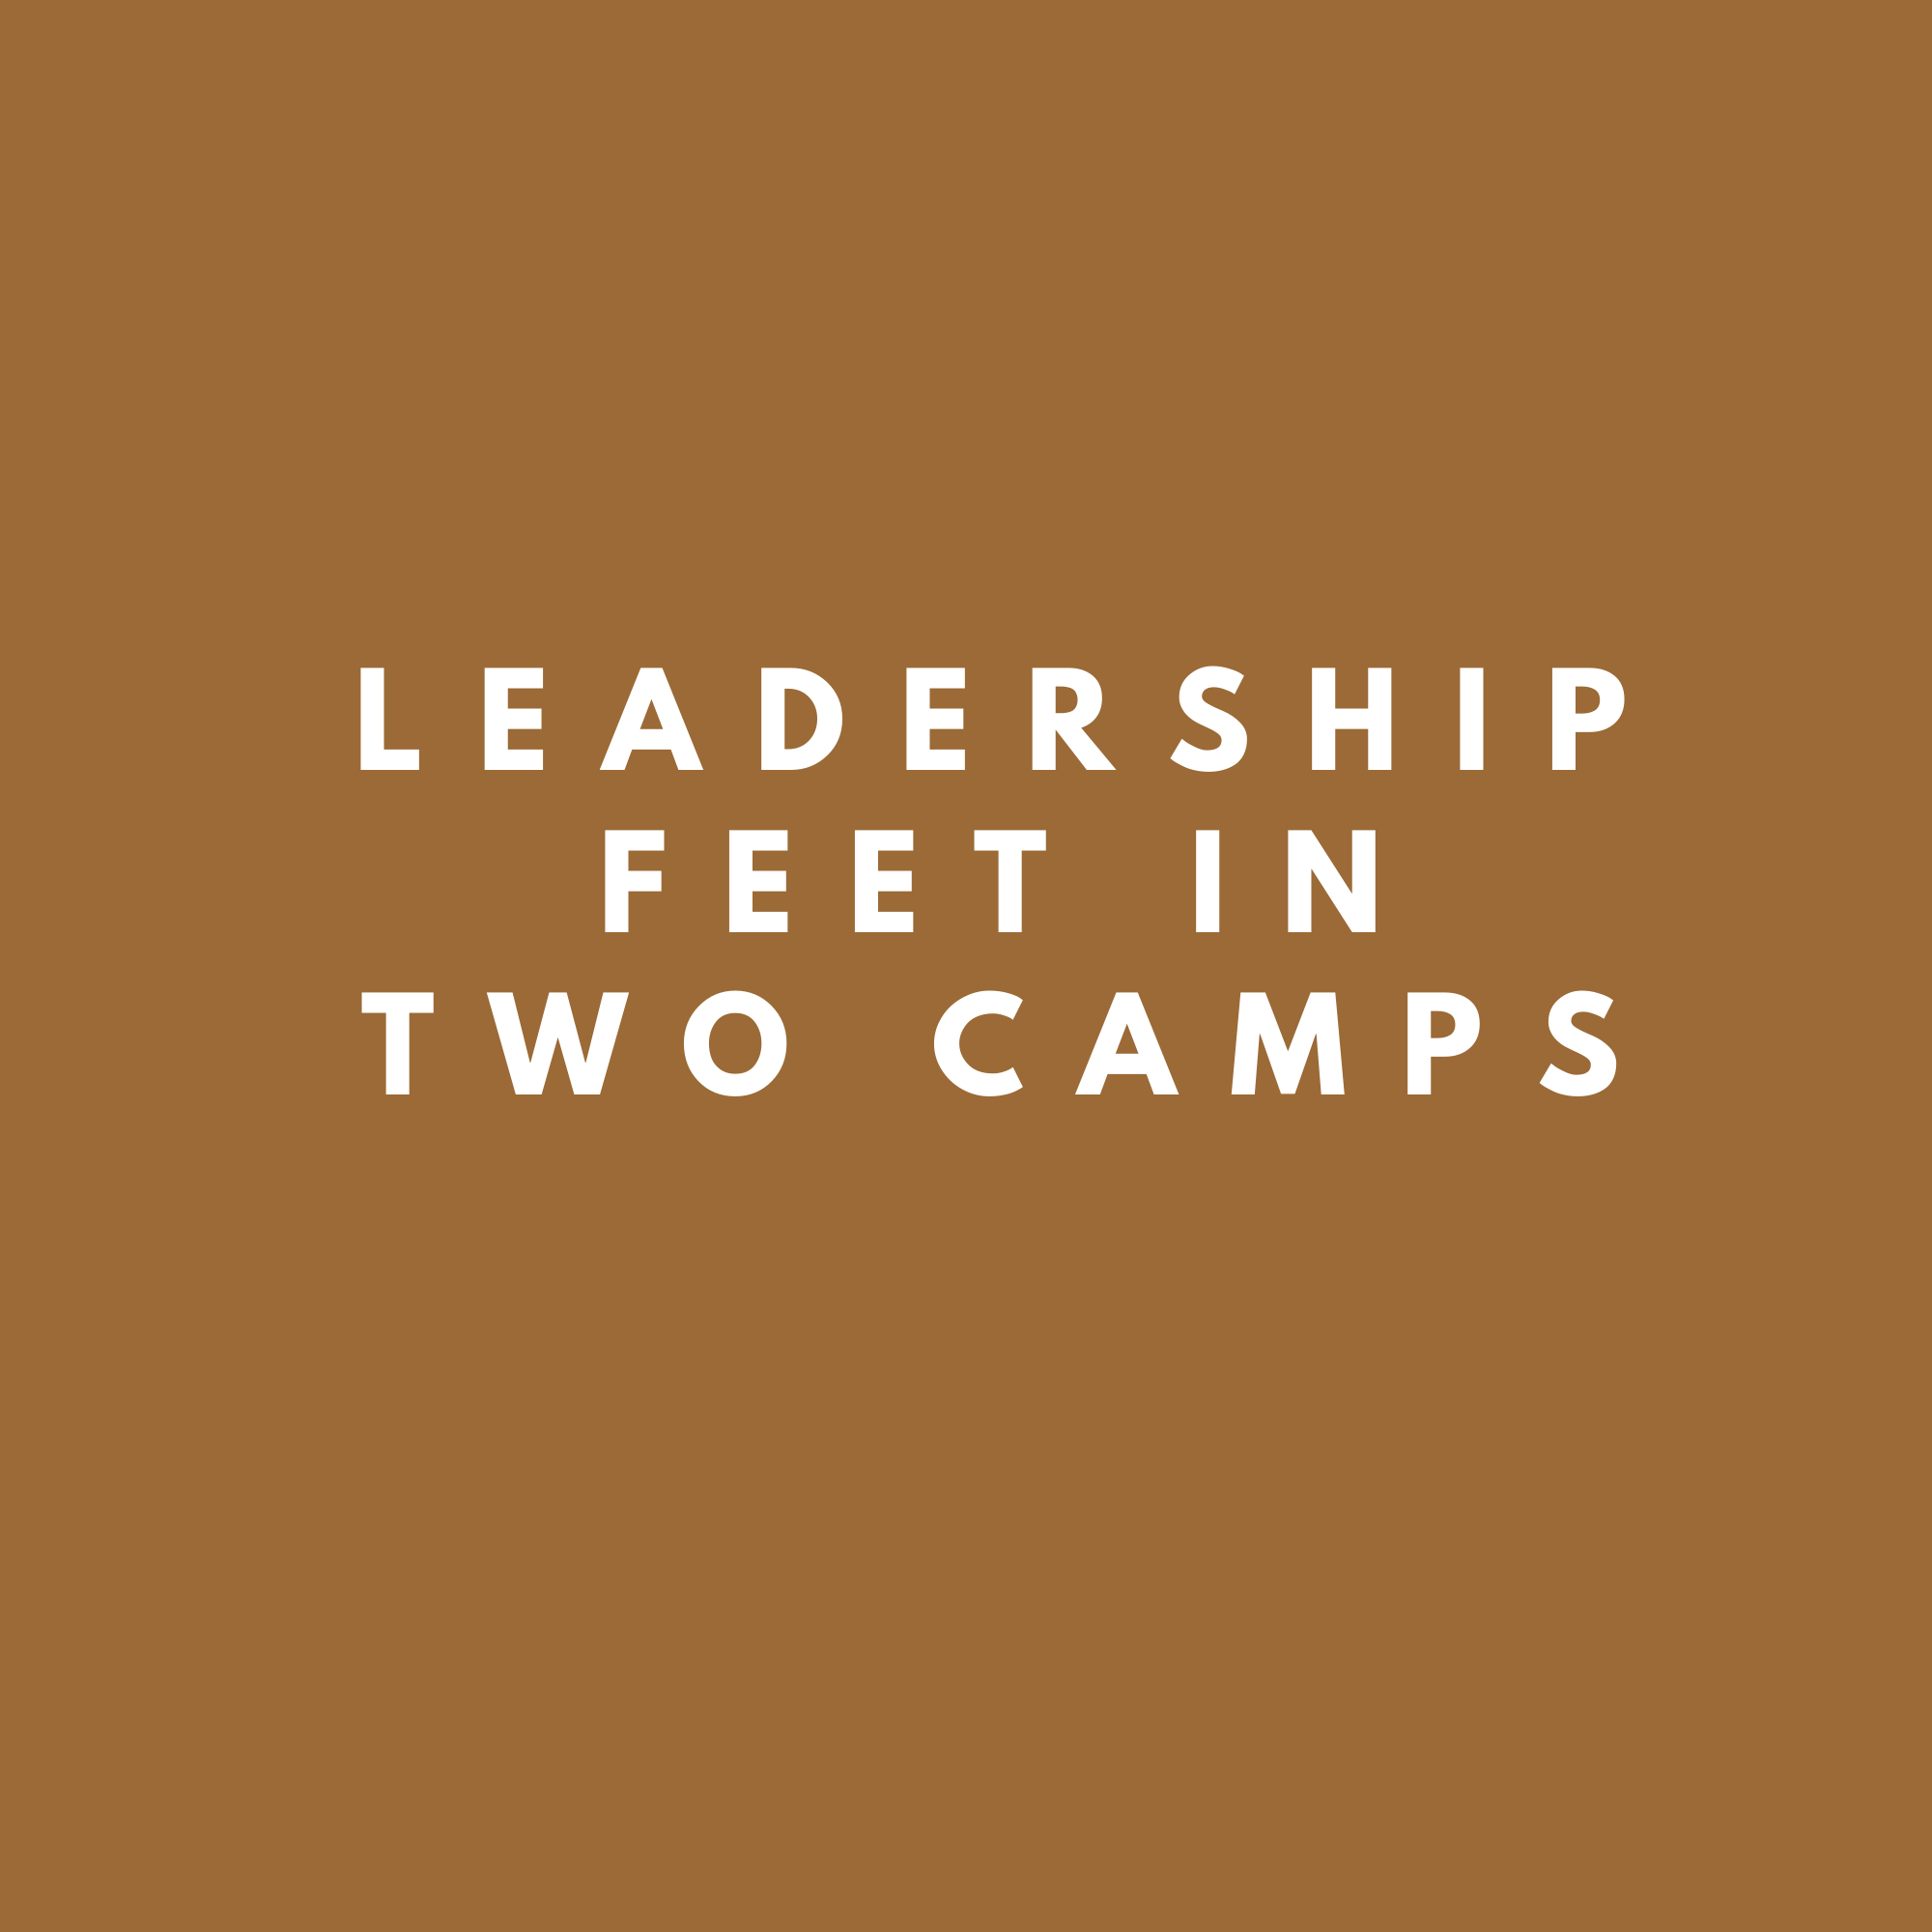 Leadership feet in two camps – the now and the tomorrow of COVID-19